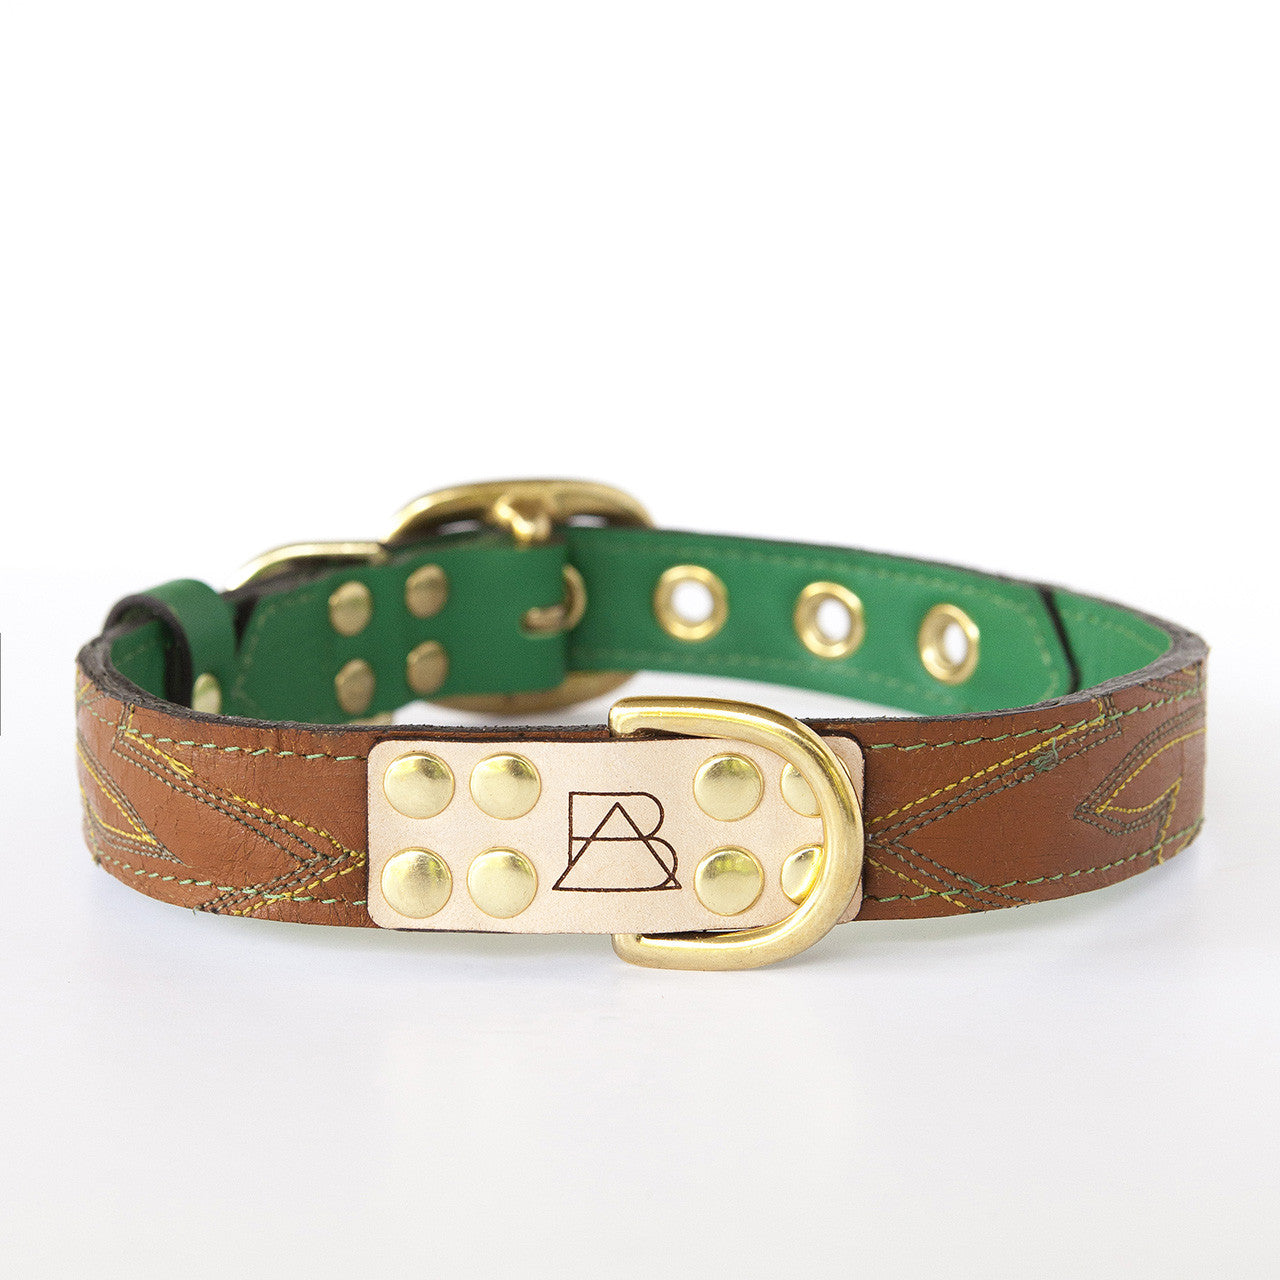 Emerald Green Dog Collar with Brown Leather + Green and Yellow Stitching (front view)